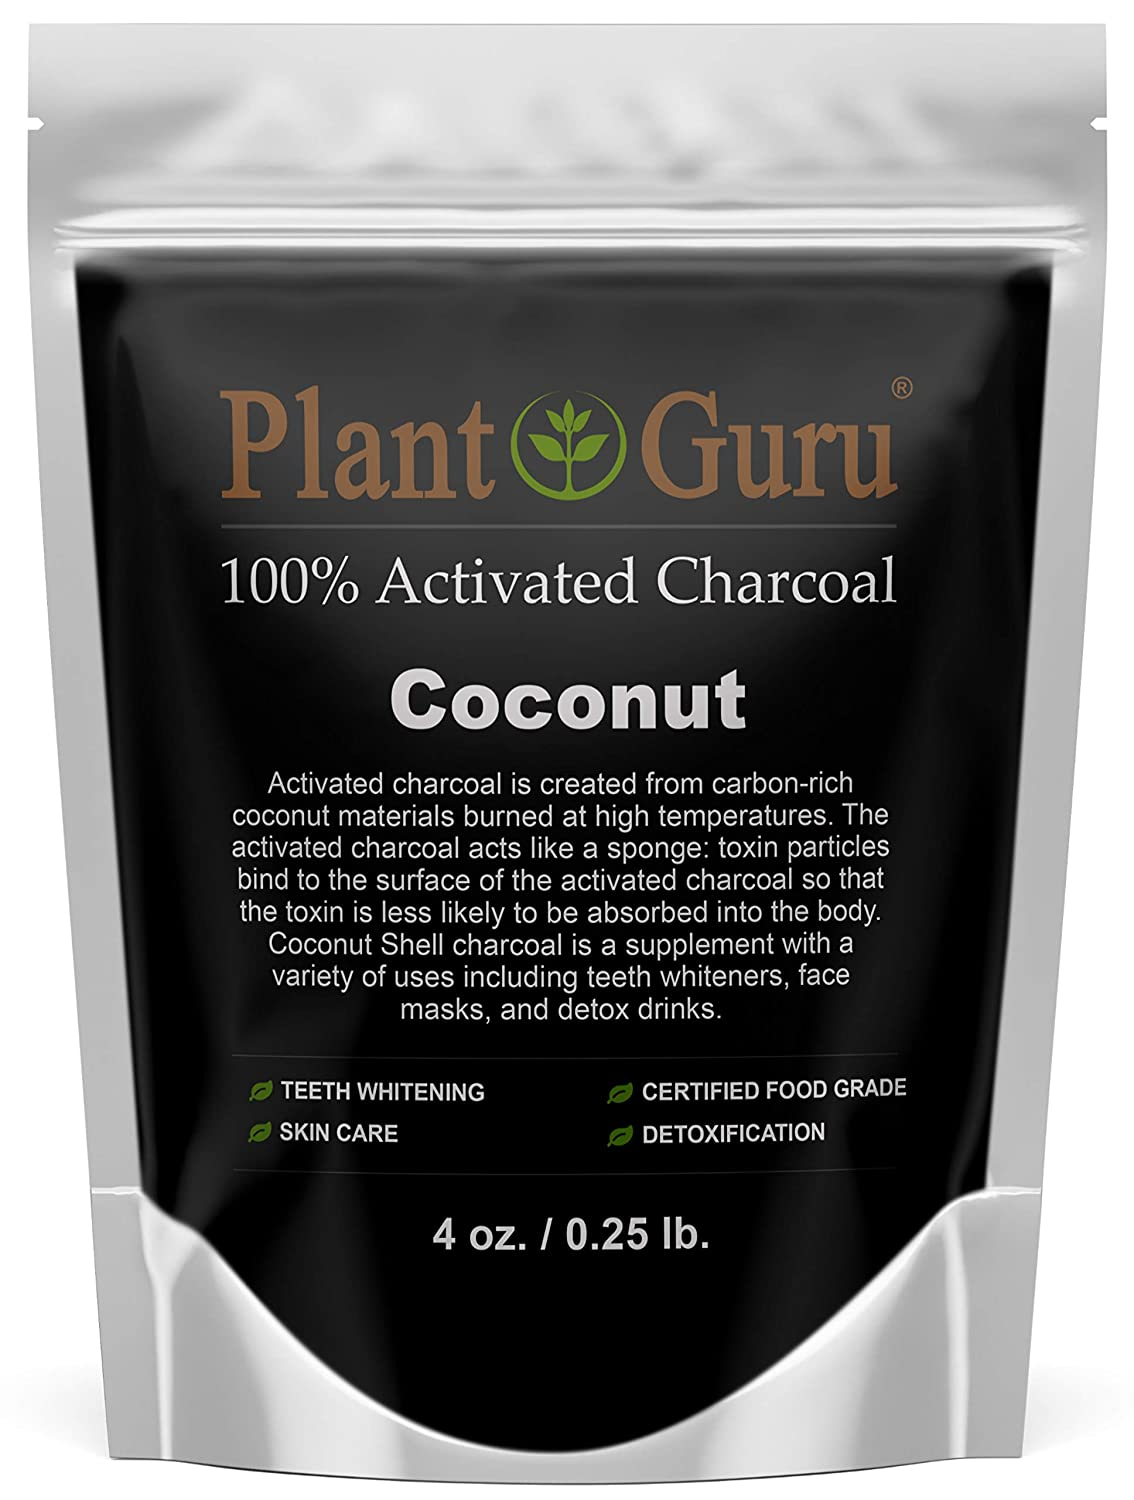 Activated Charcoal Powder 4 oz. COCONUT - Food Grade Kosher Non-GMO - Teeth Whitening, Facial Mask and Soap Making. Promotes Natural Detoxification and Helps Digestion